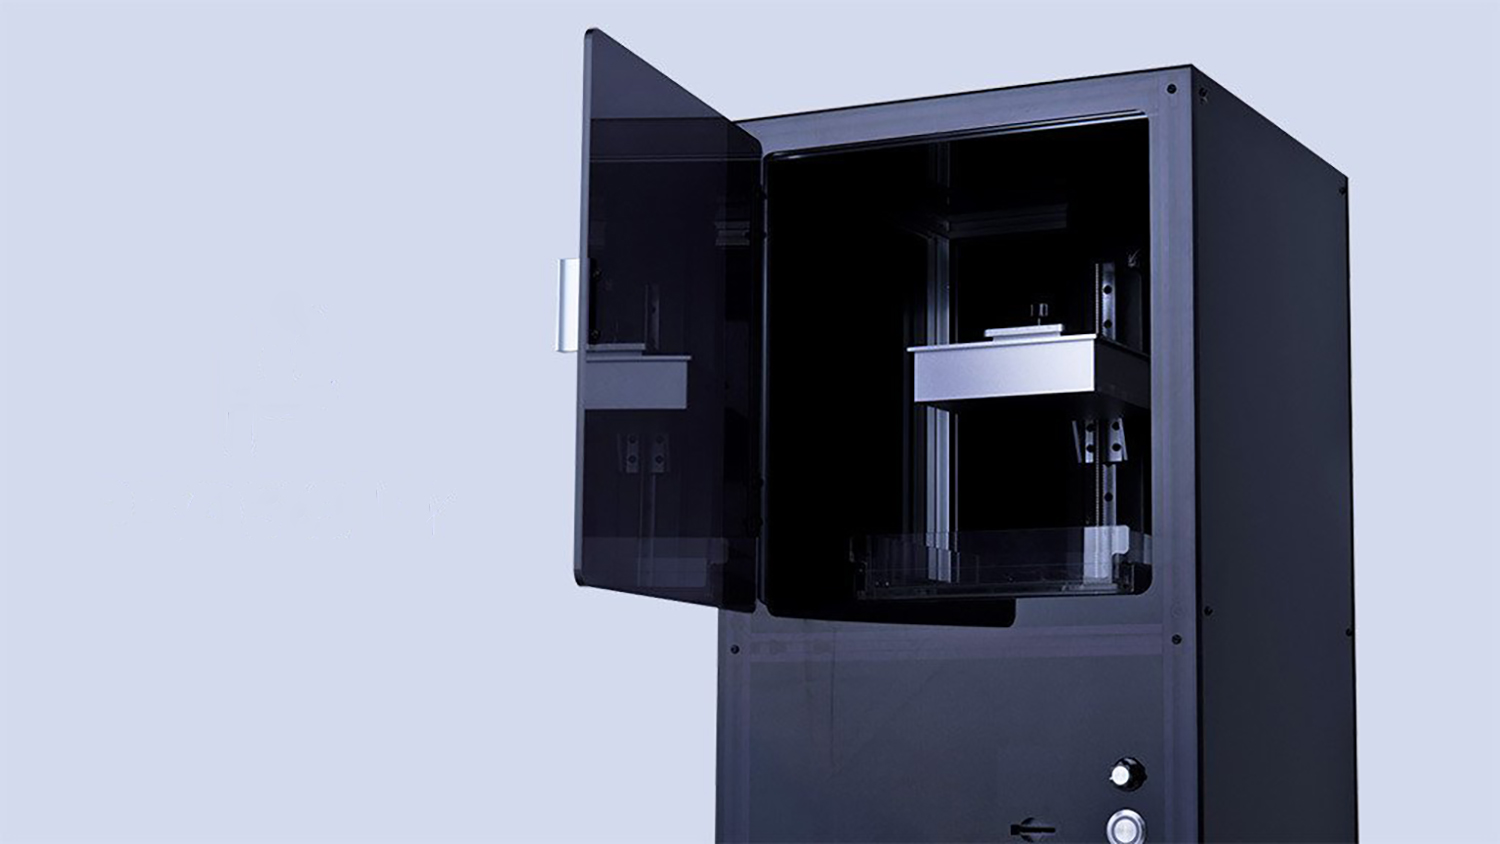 Peopoly Moai Review: A Complex, Very Capable SLA 3D Printer